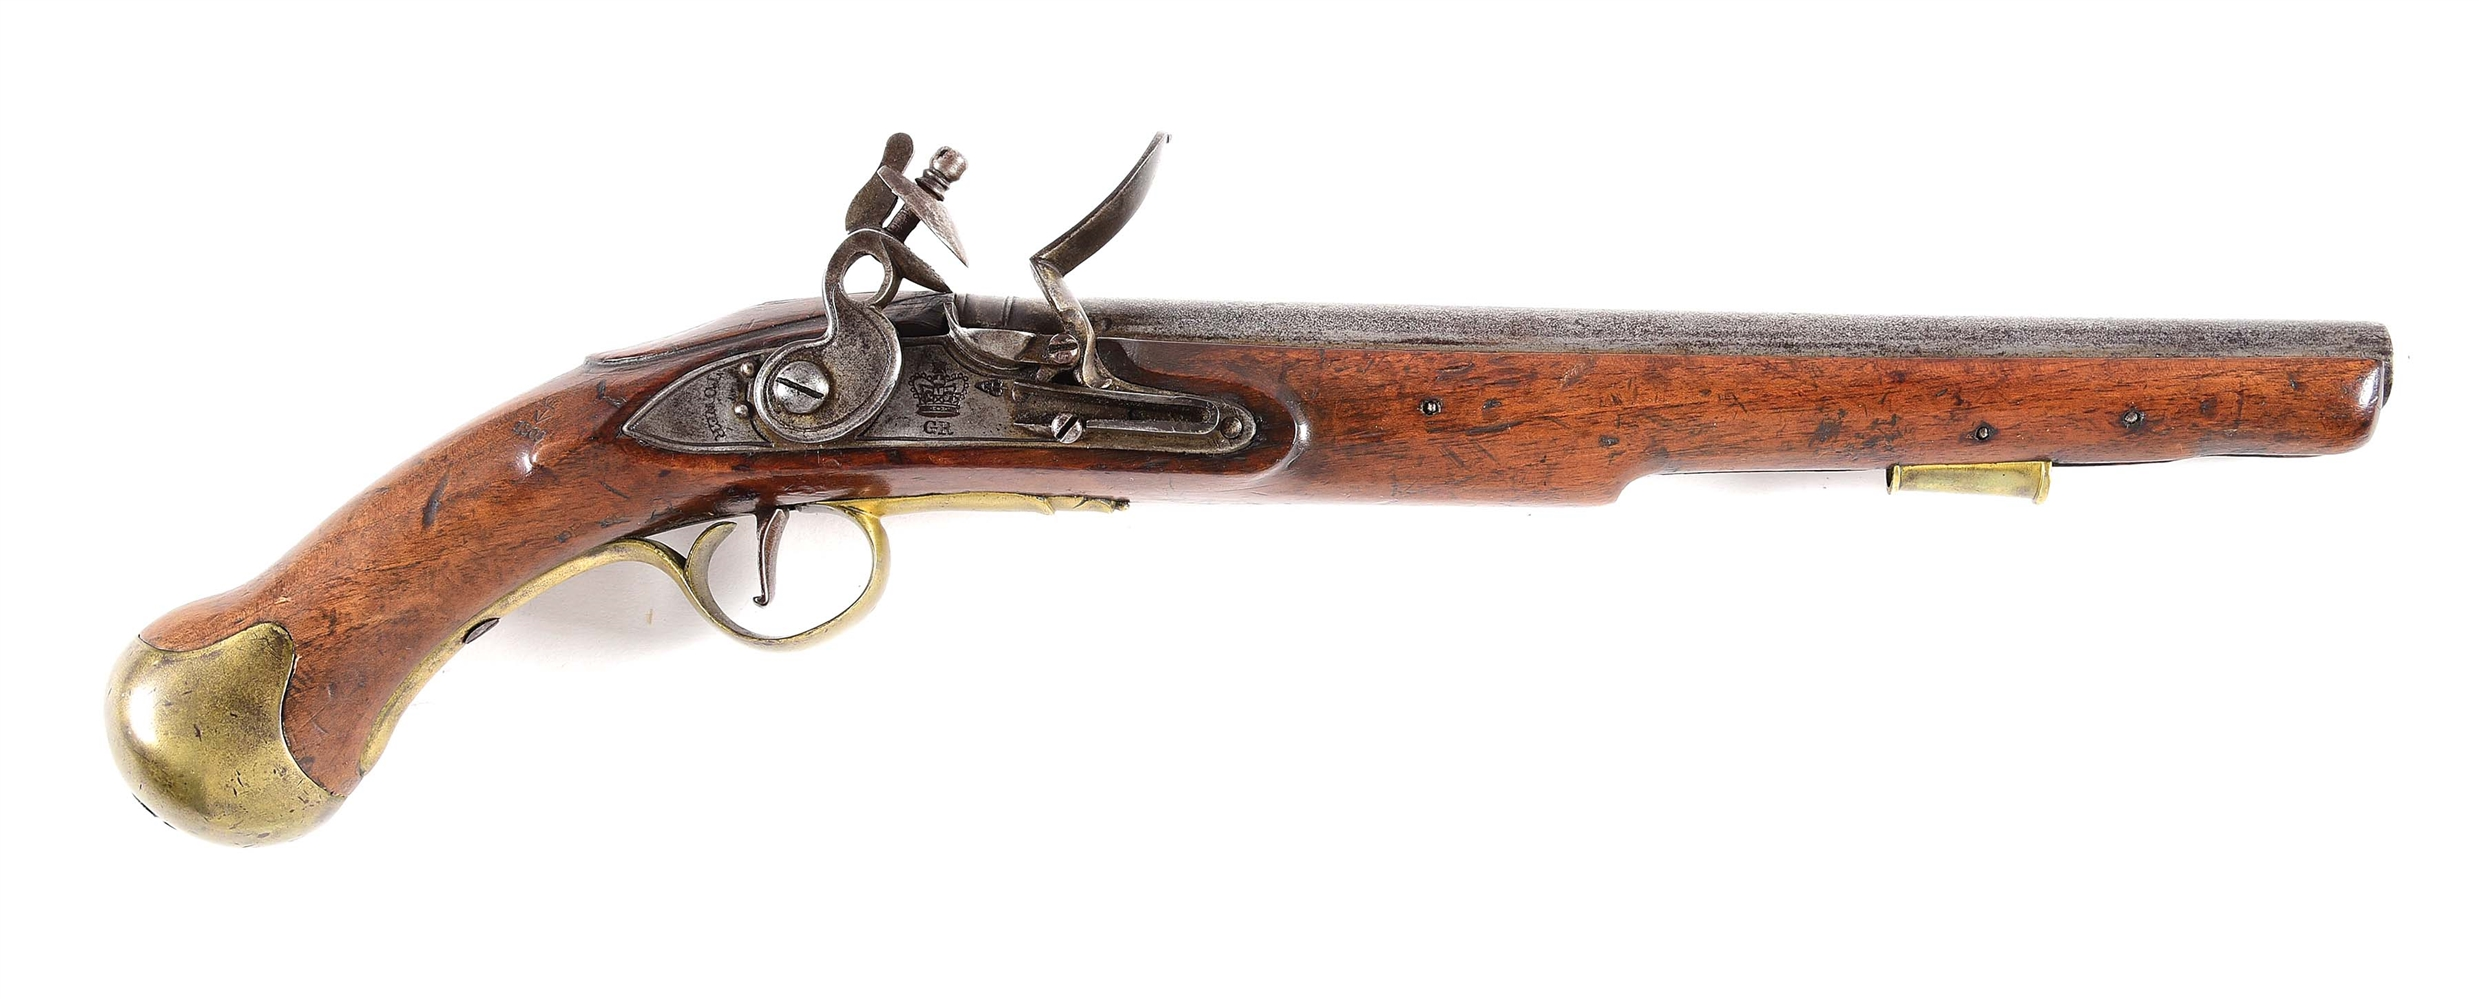 (A) BRITISH 1796 PATTERN SEA SERVICE PISTOL.